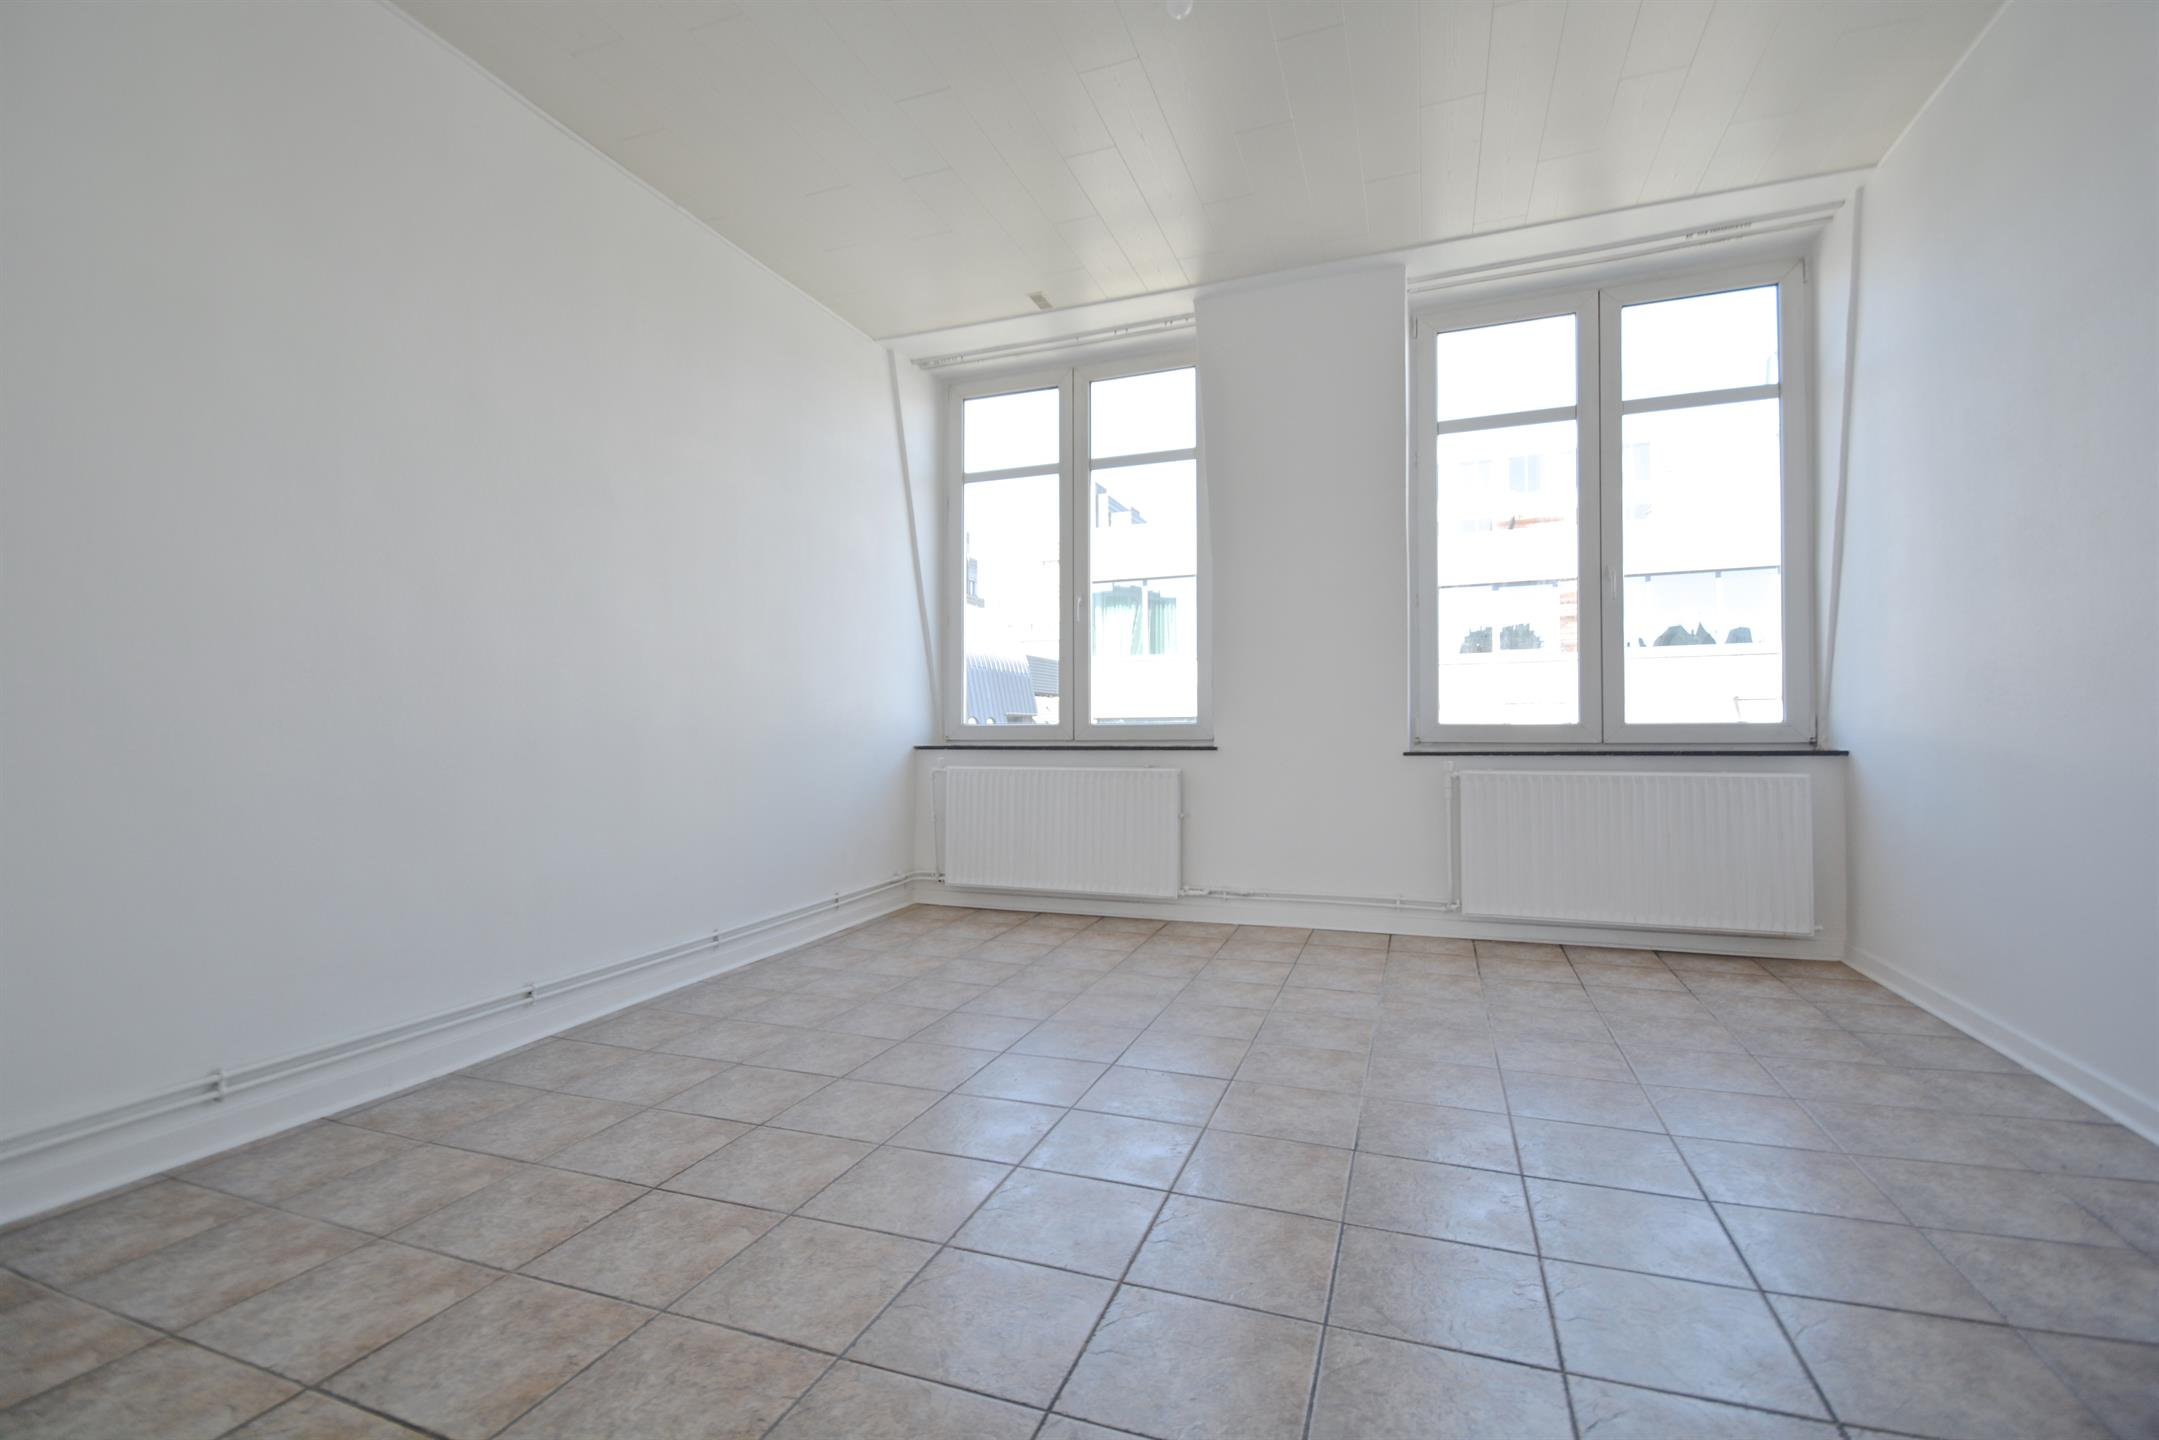 Appartement - Saint-Gilles - #4118613-3